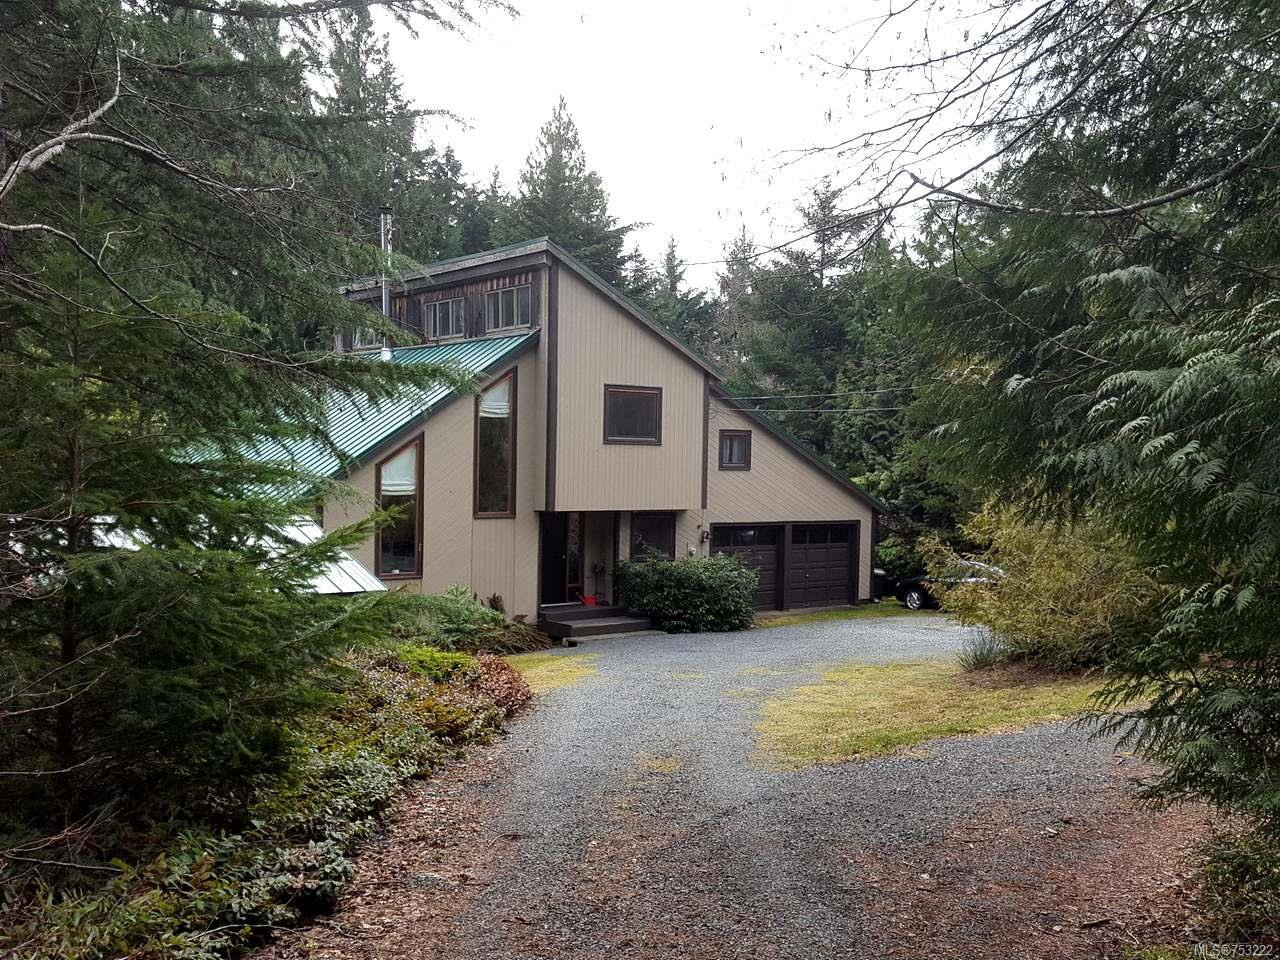 Main Photo: 2420 Nanoose Rd in NANOOSE BAY: PQ Nanoose House for sale (Parksville/Qualicum)  : MLS®# 753222